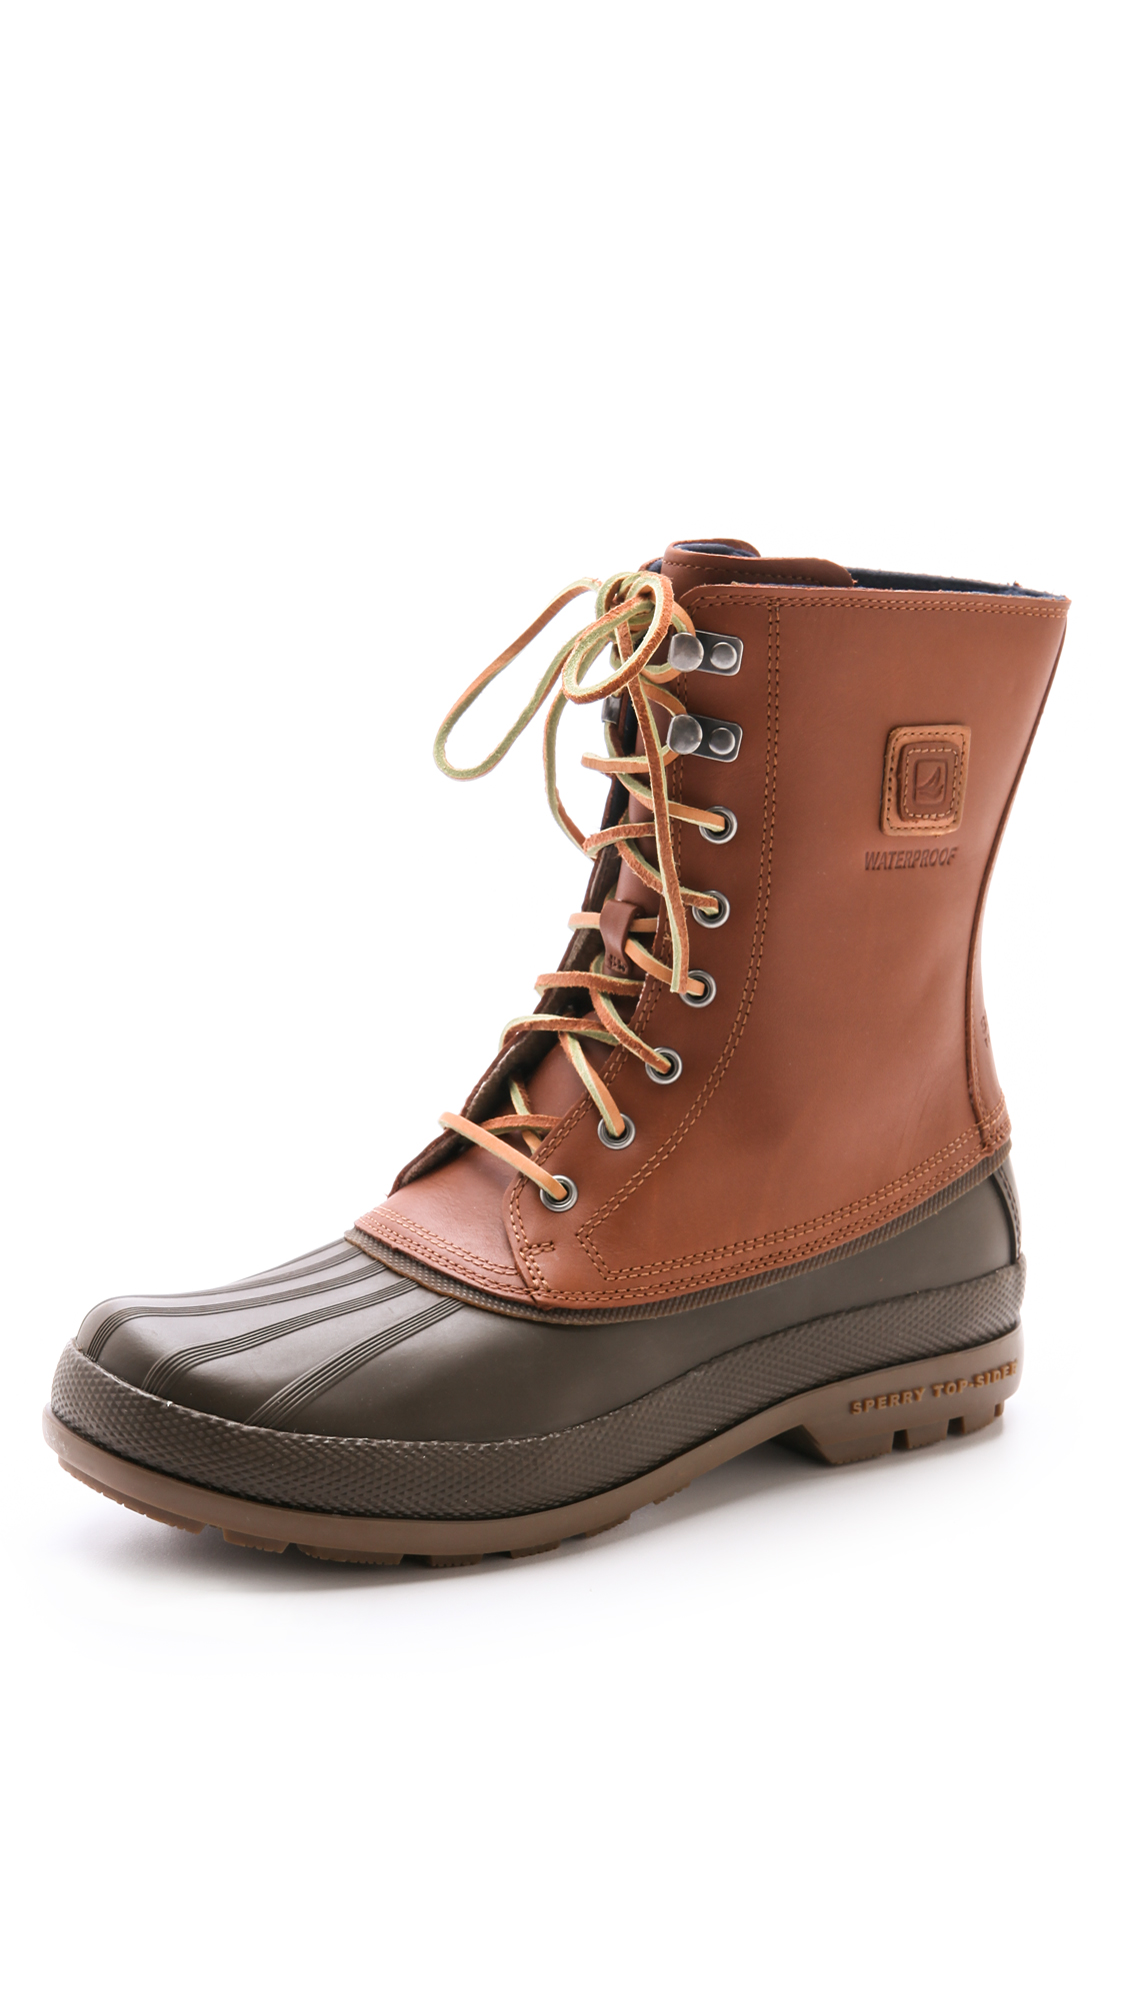 79ee2ba4029643 Lyst - Sperry Top-Sider Cold Bay Boots in Brown for Men